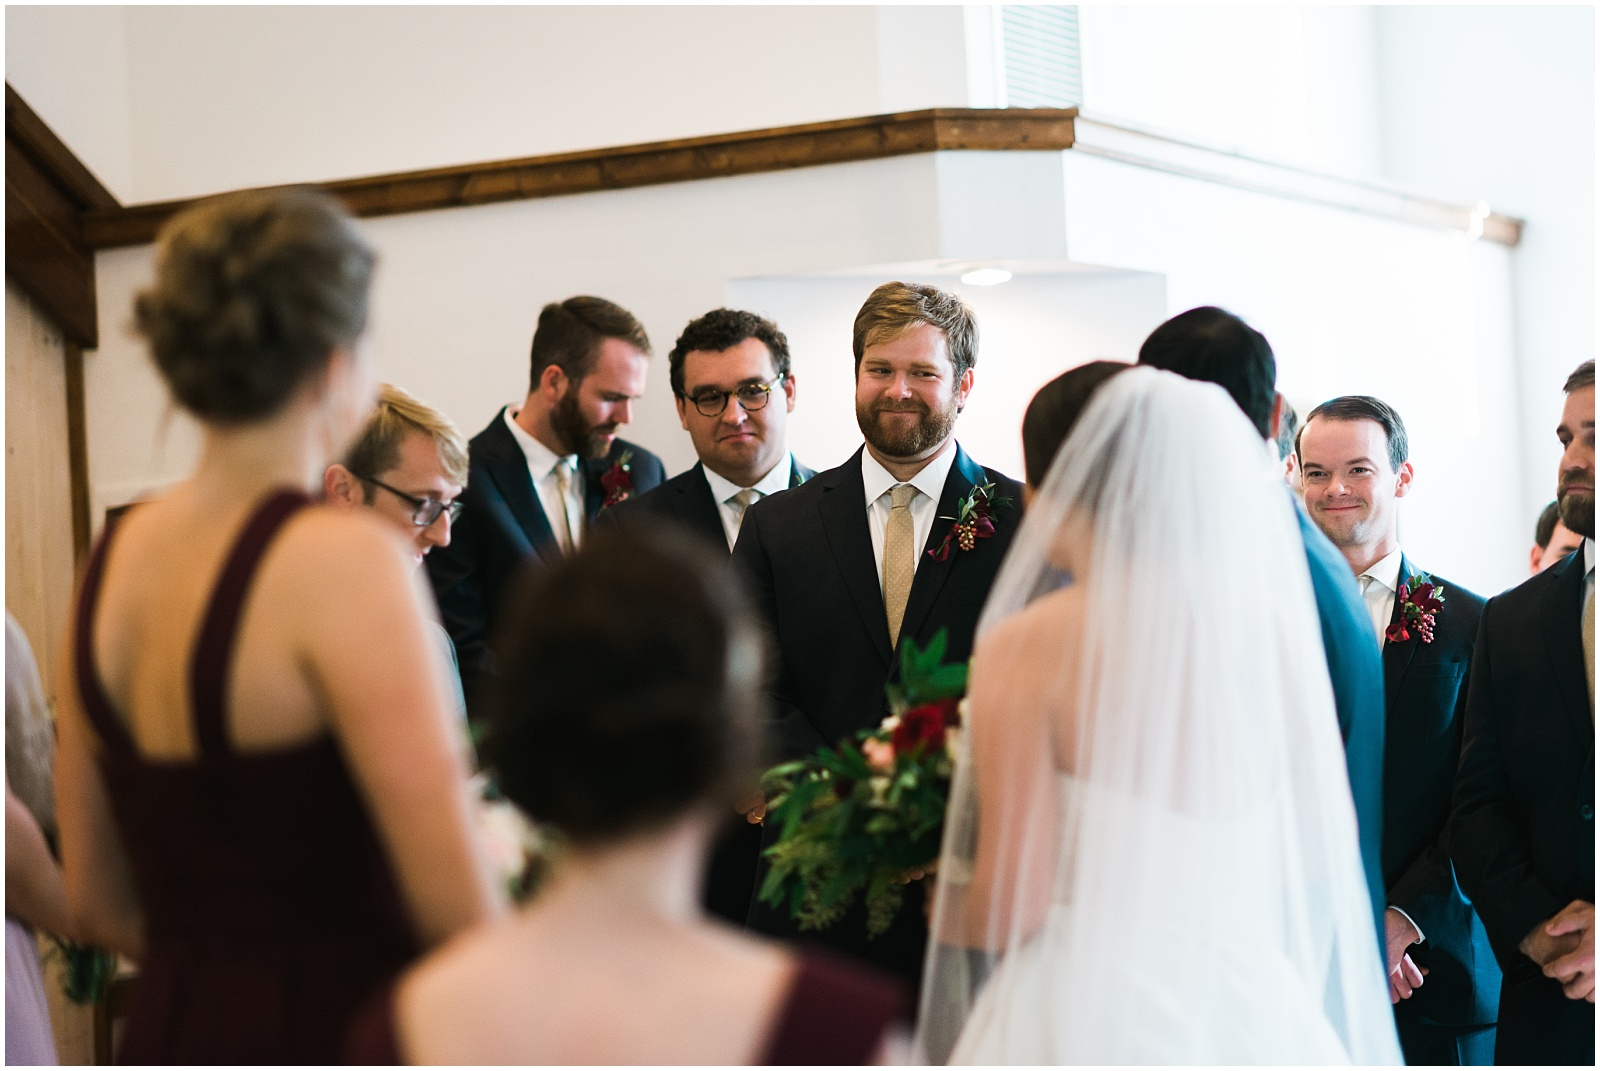 Candids during ceremony